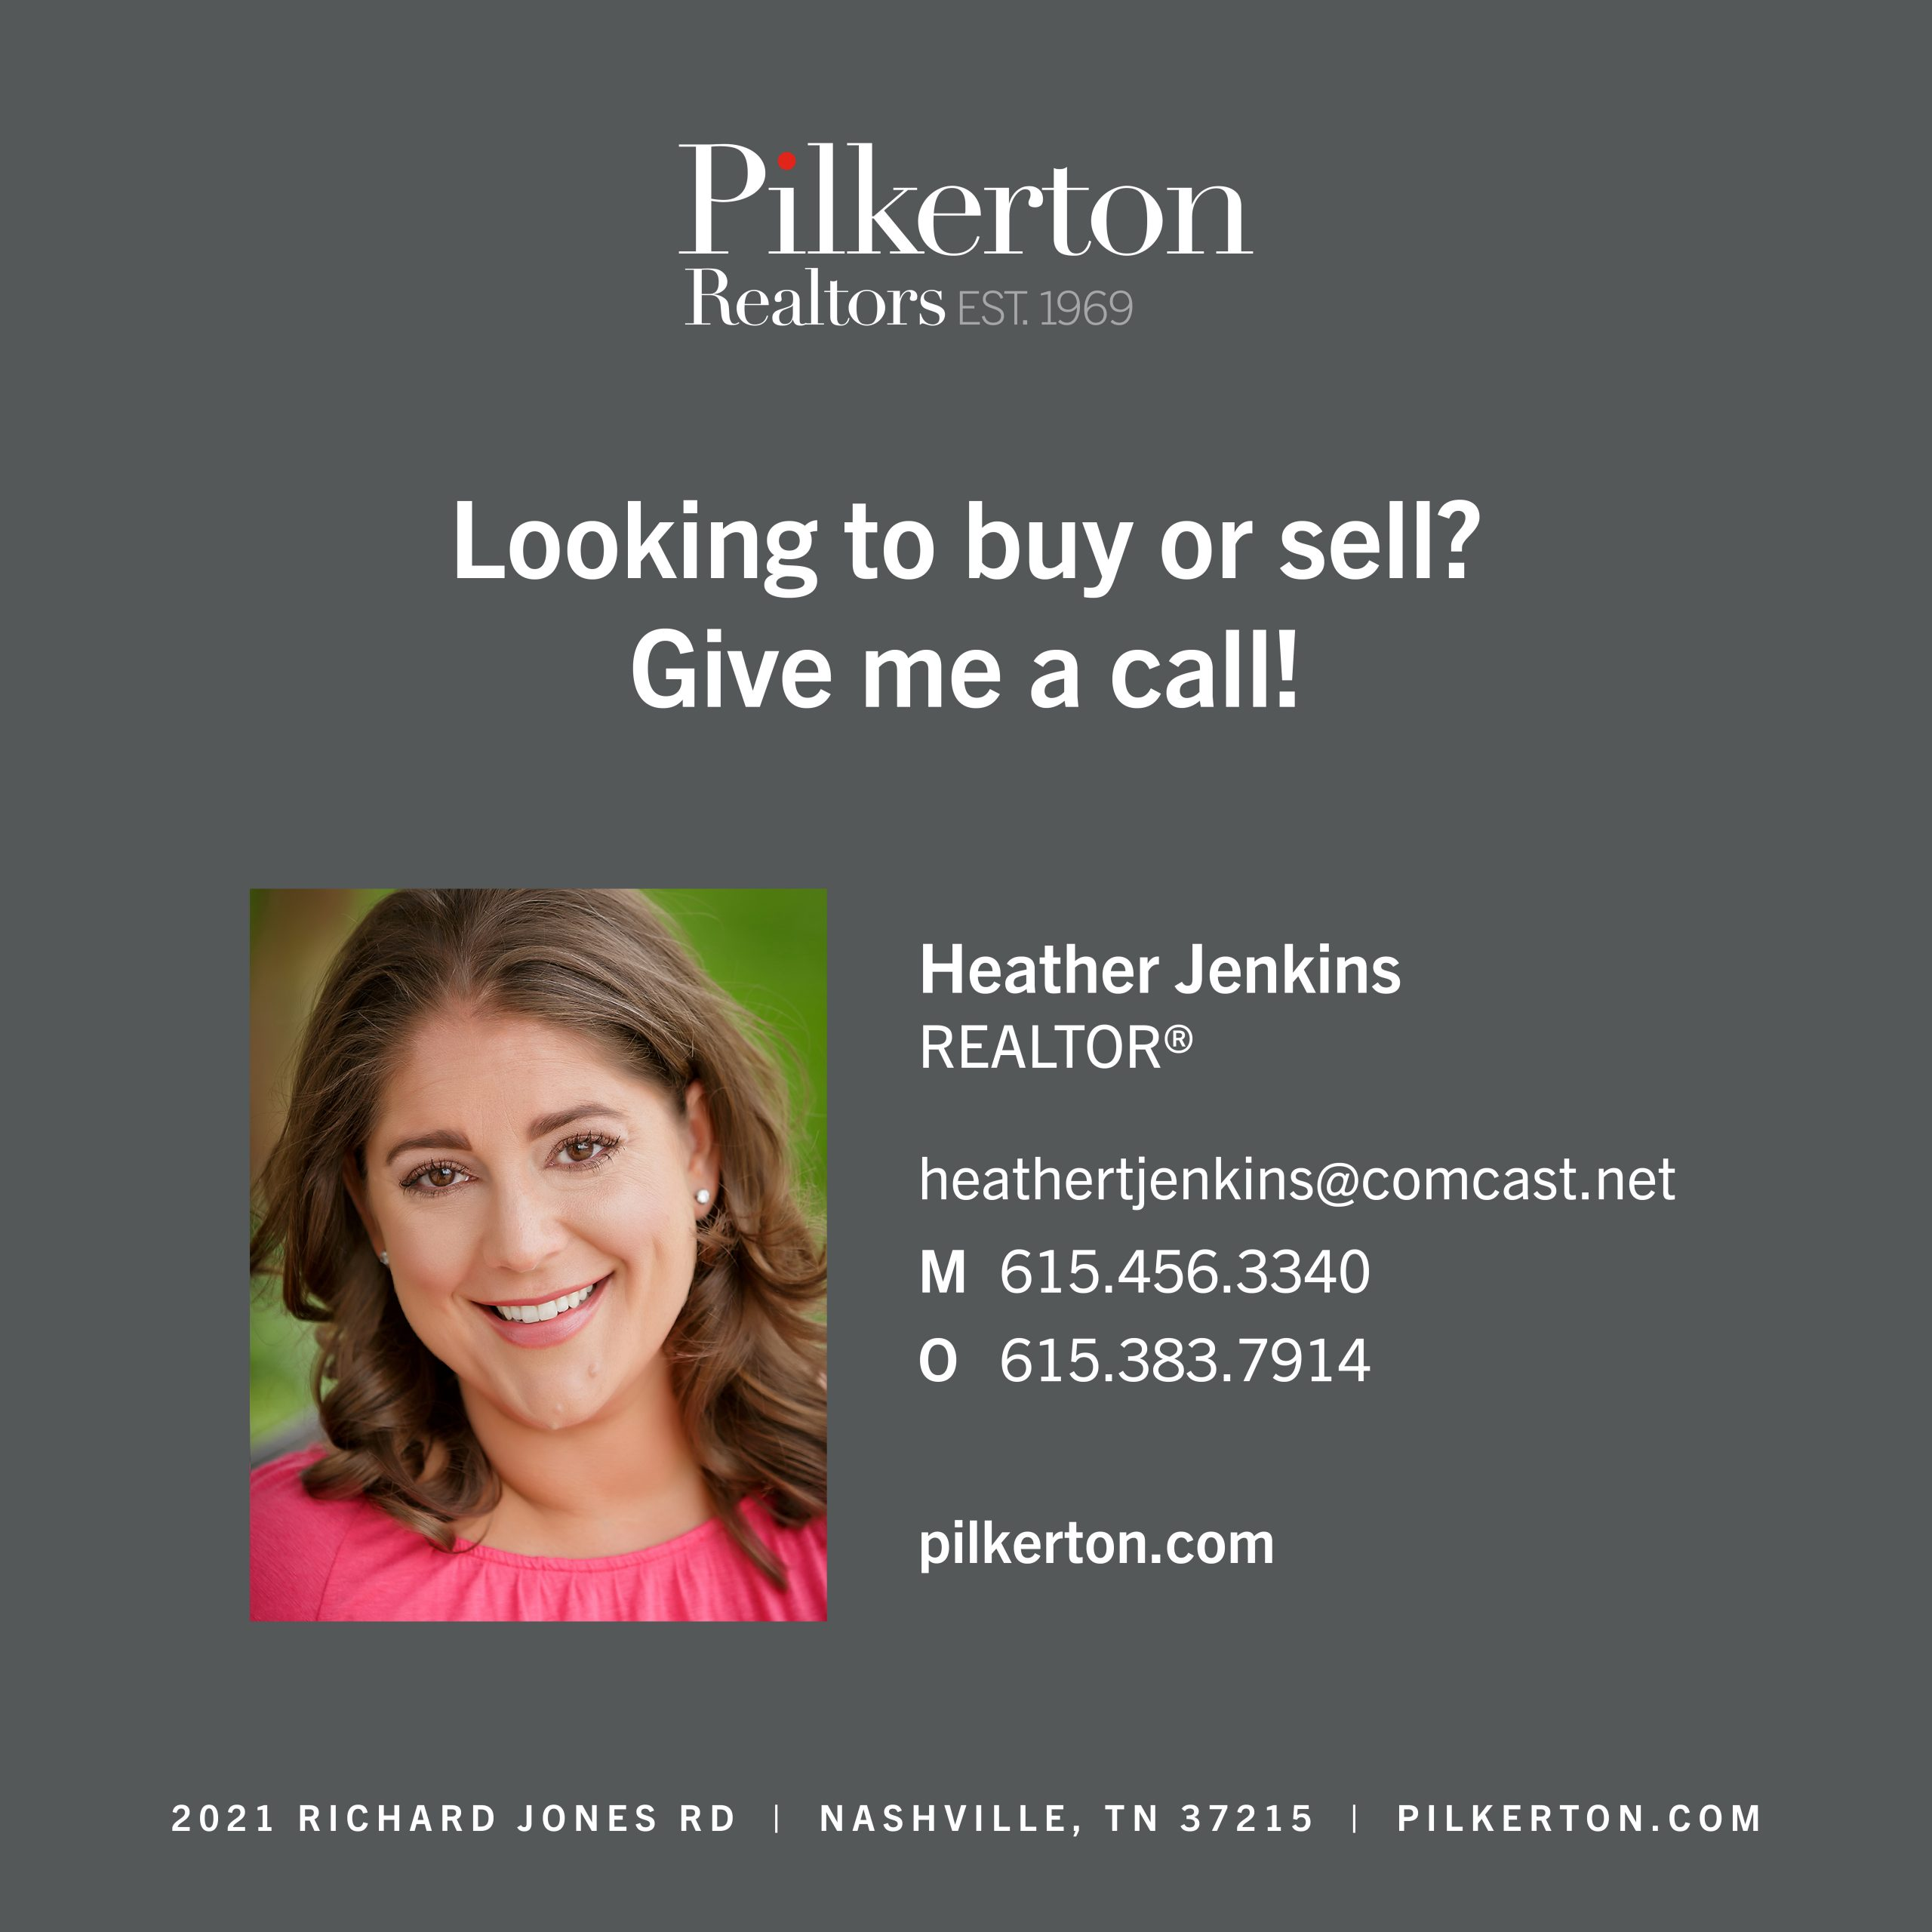 Heather Jenkins-REALTOR